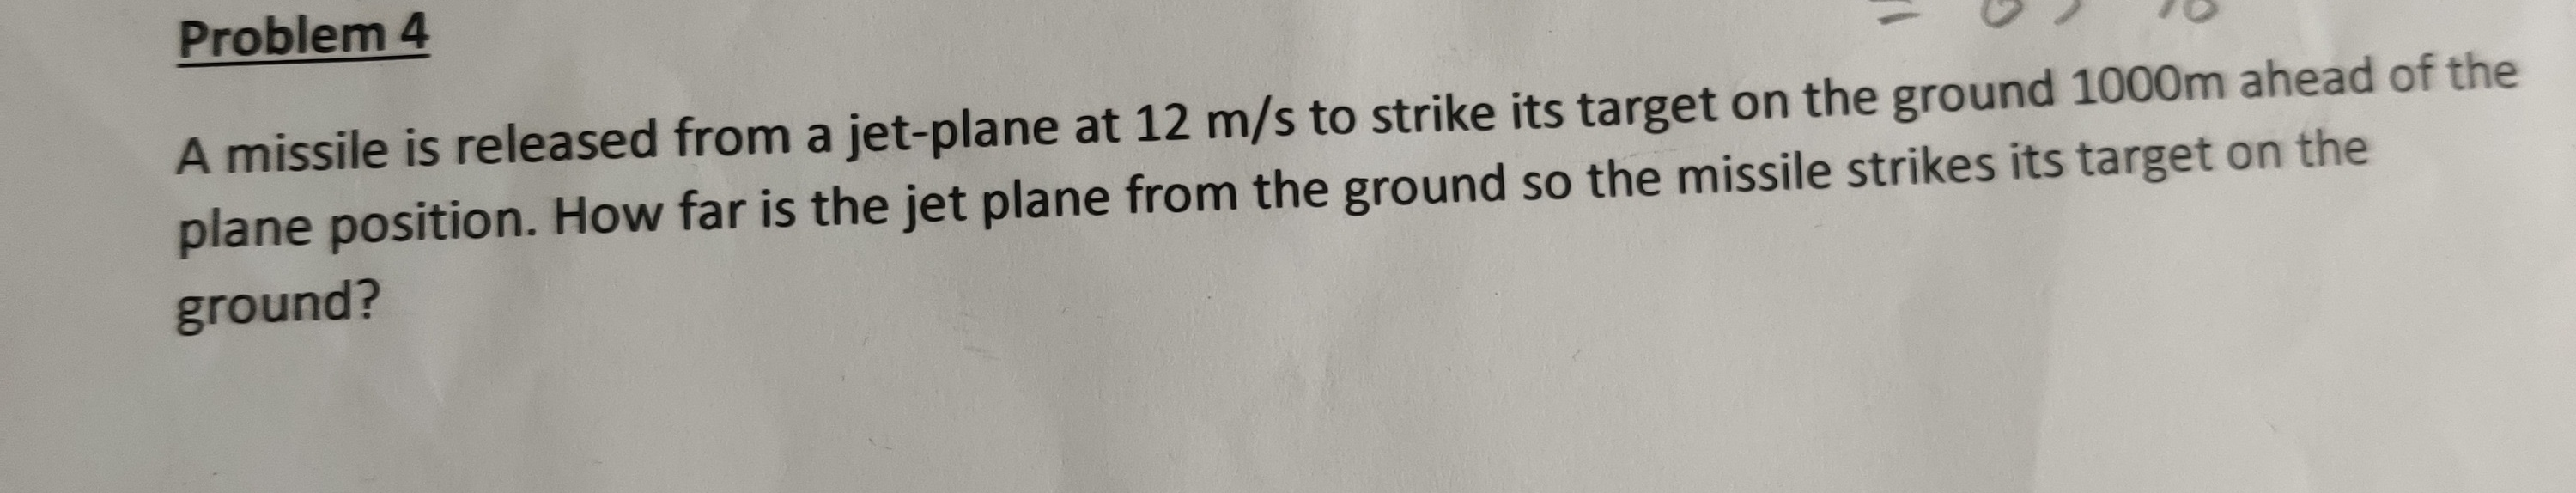 Problem 4 A missile is released from a jet-plane at 12 m/s to strike its target on the ground 1000m ahead of the plane position. How far is the jet plane from the ground so the missile strikes its target on the ground?